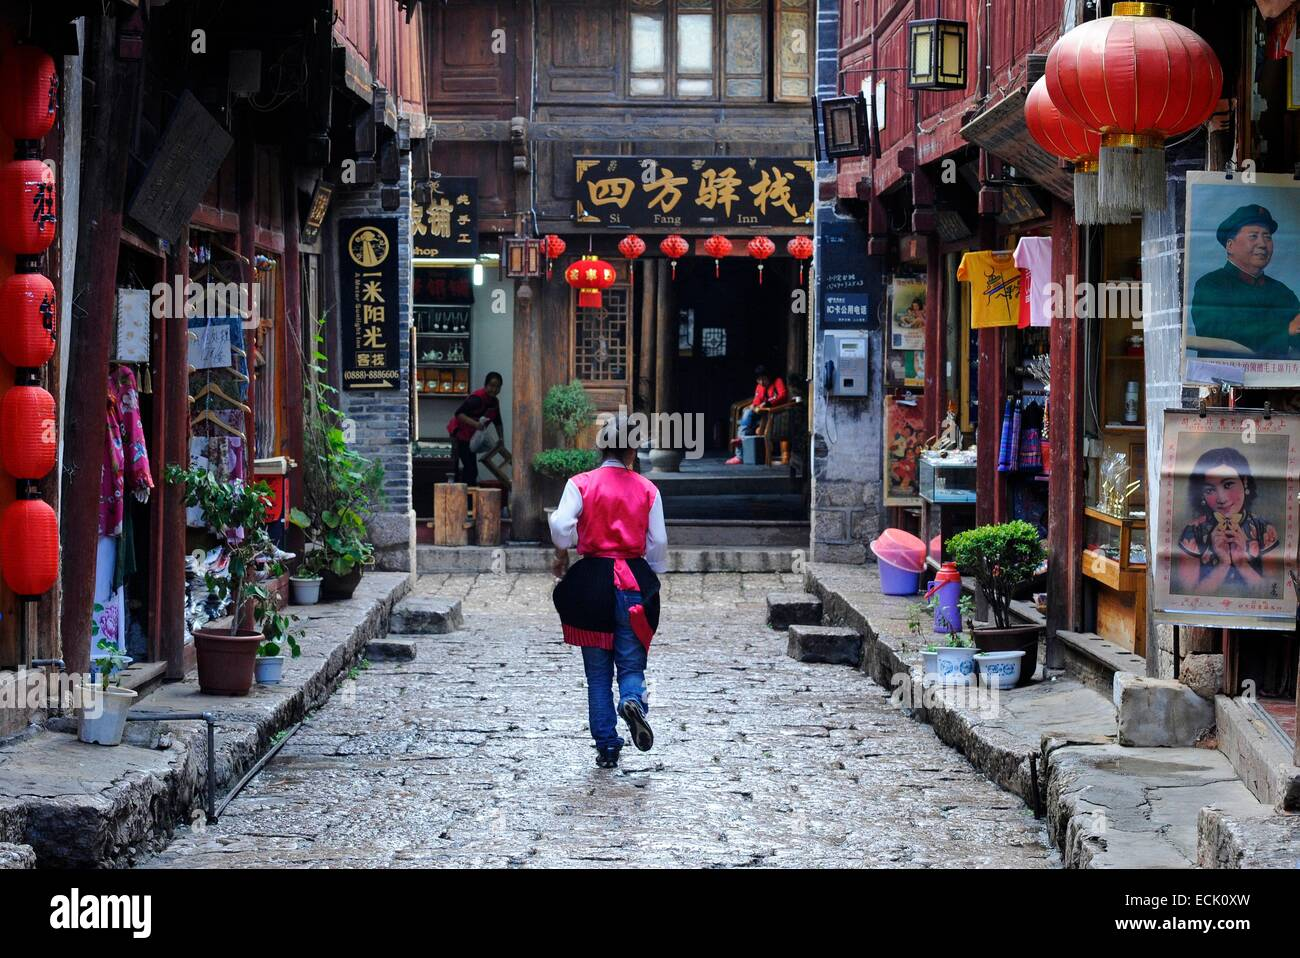 China, Yunnan Province, Lijiang, old city listed as World Heritage by UNESCO - Stock Image